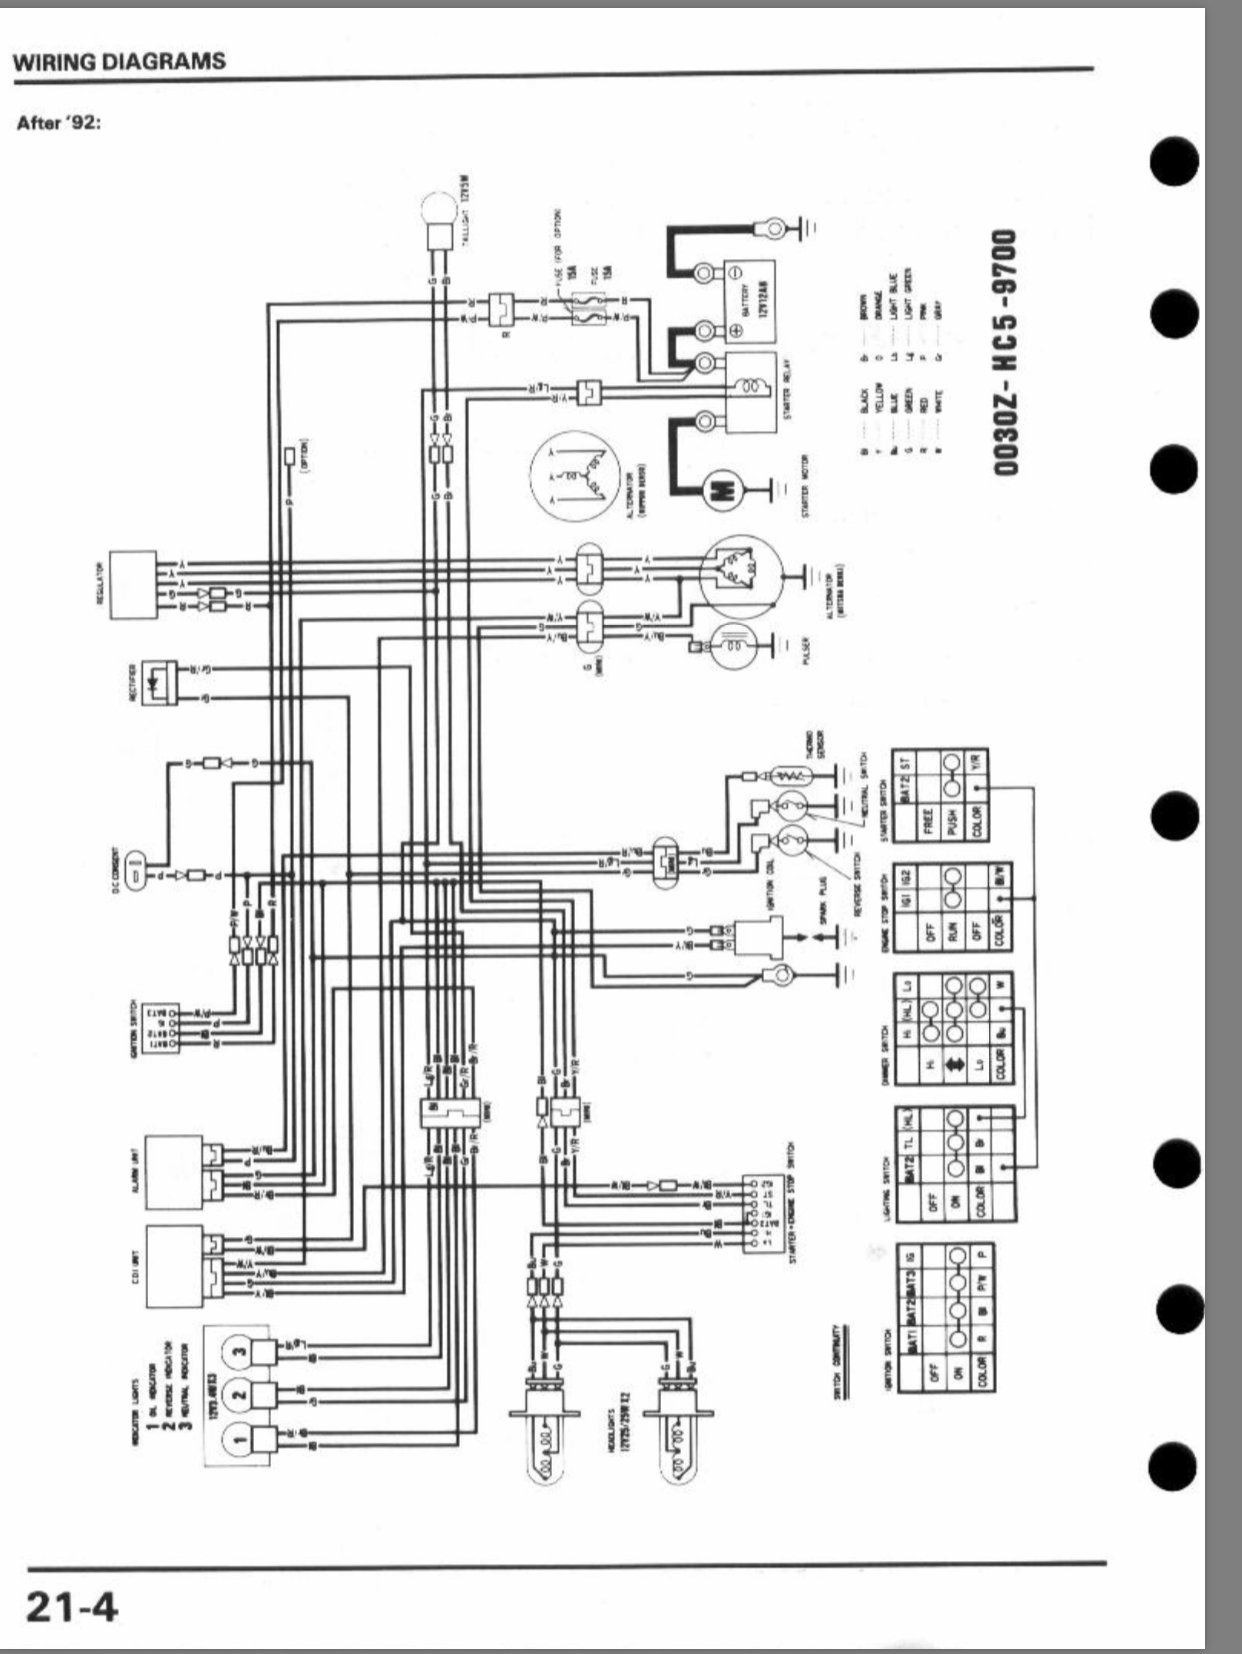 Honda Fourtrax 300 Wiring Schematic - Wiring Diagram Text hit-post -  hit-post.albergoristorantecanzo.it | Trx 300 Fourtrax Wiring Diagram For |  | hit-post.albergoristorantecanzo.it